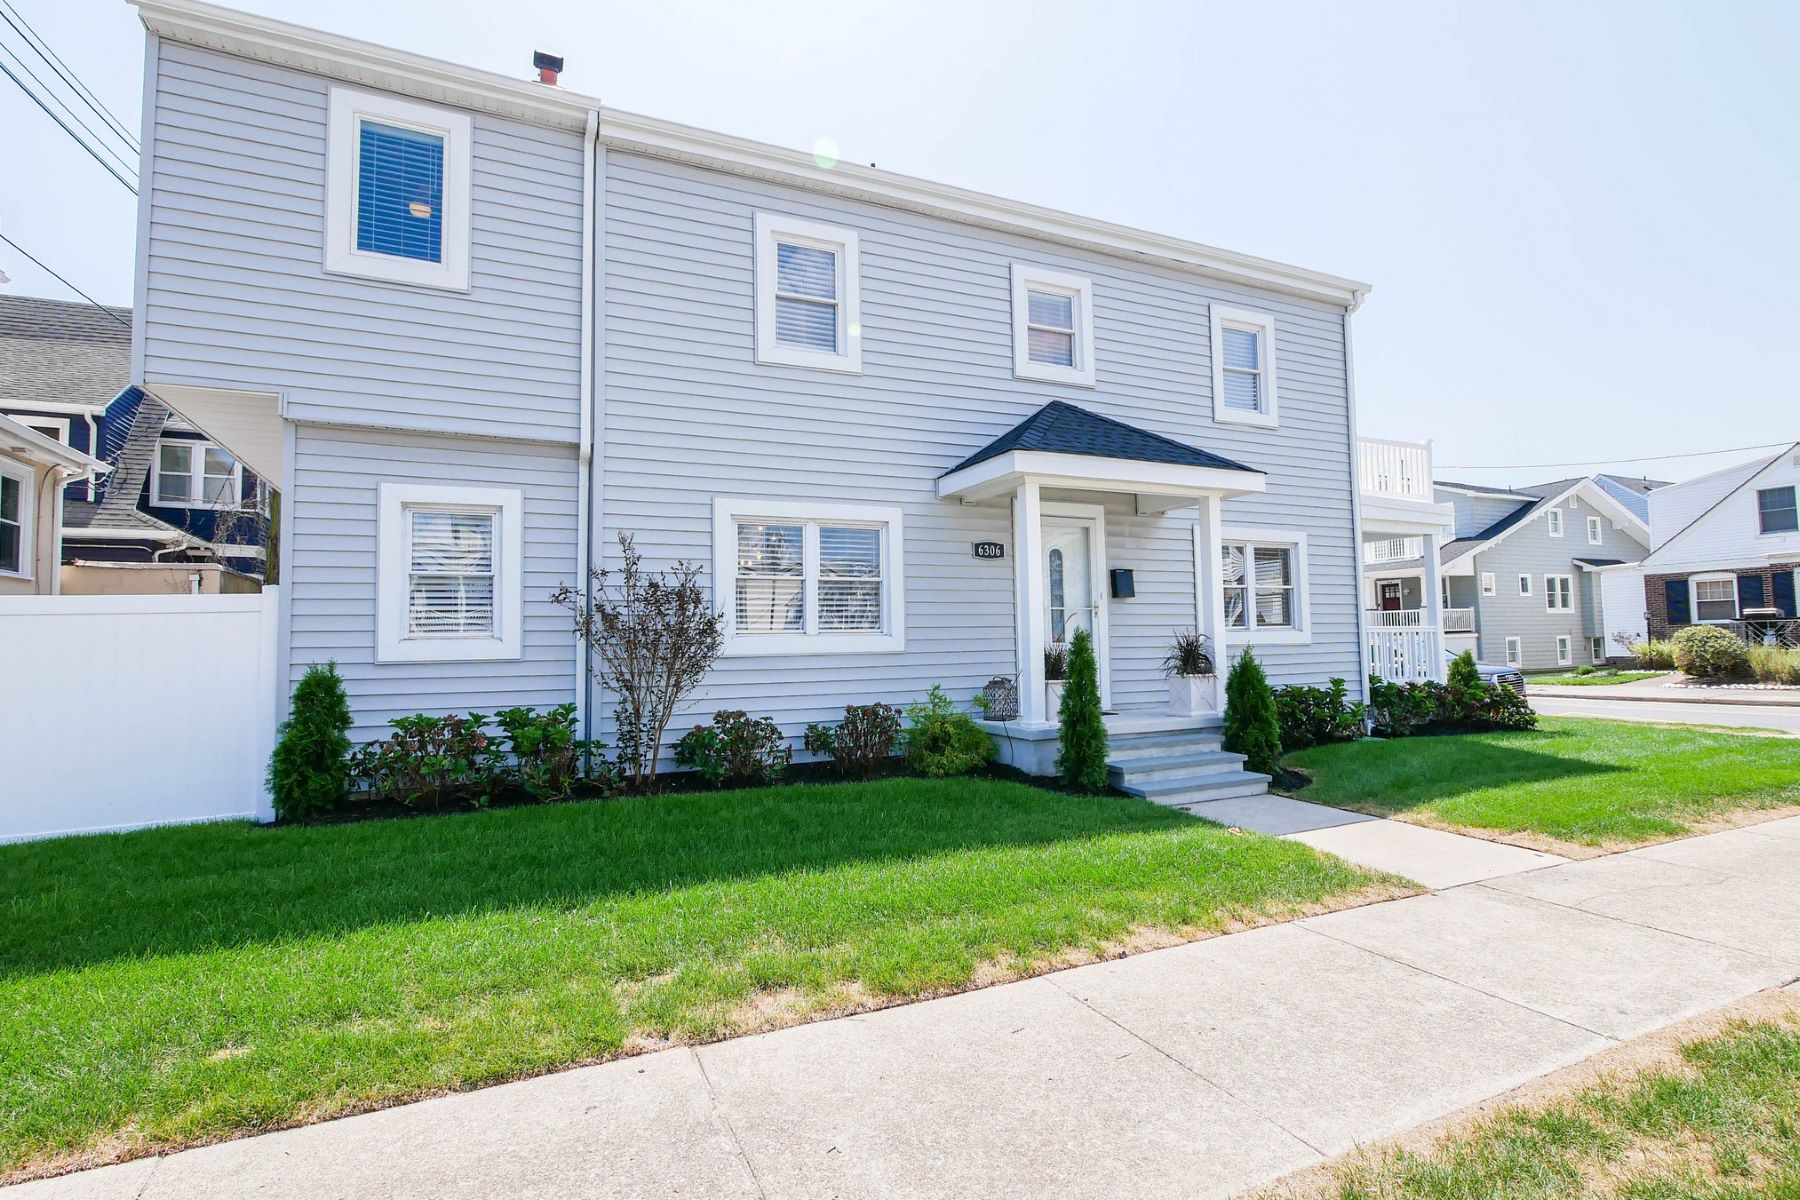 Single Family Homes for Sale at 101 S Portland 101 S. Portland Ave, Ventnor, New Jersey 08406 United States